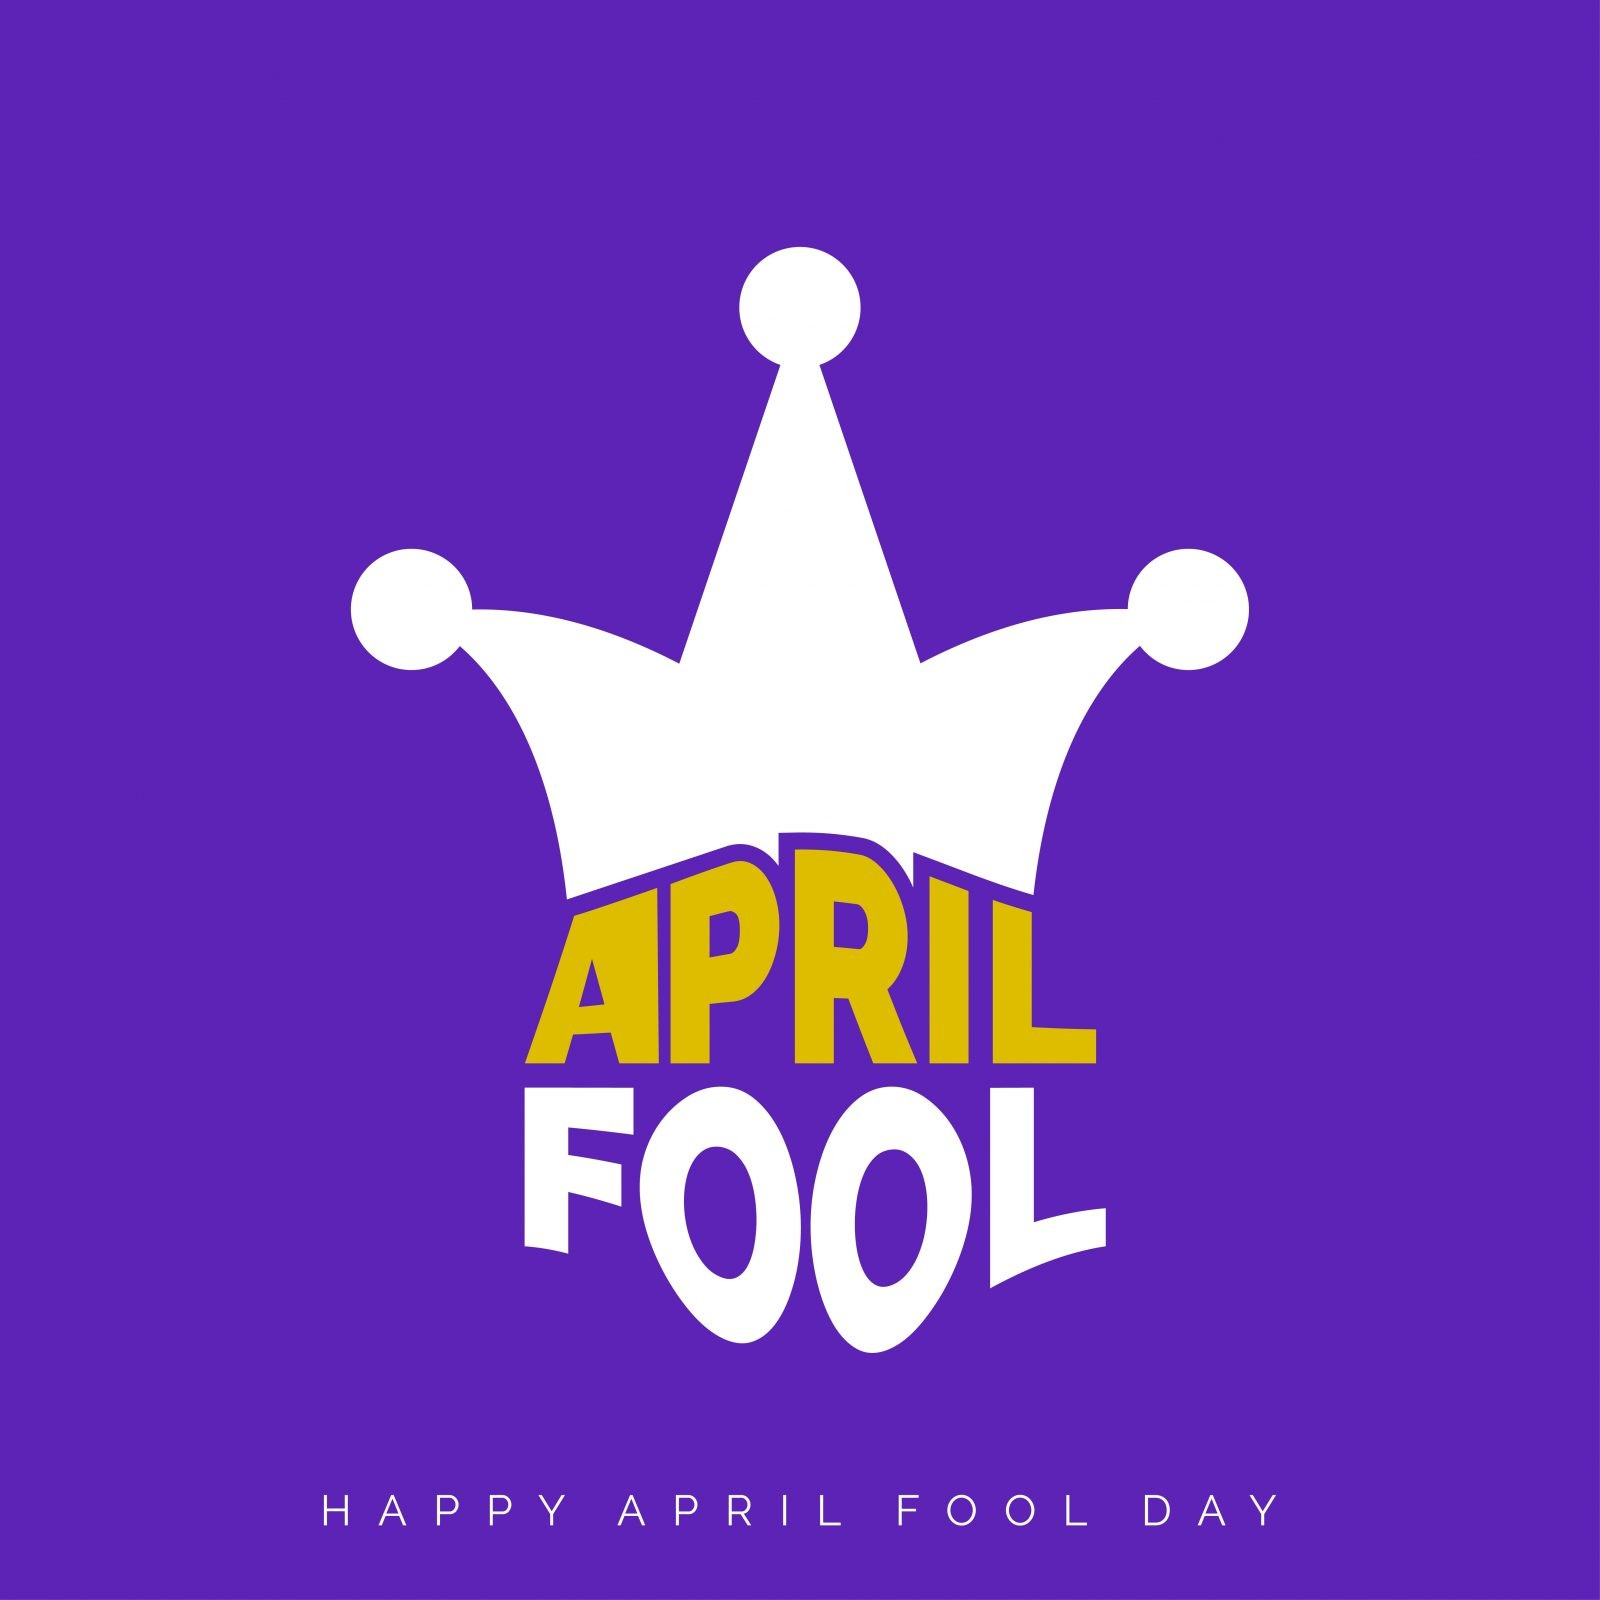 April Fool's Day 2019